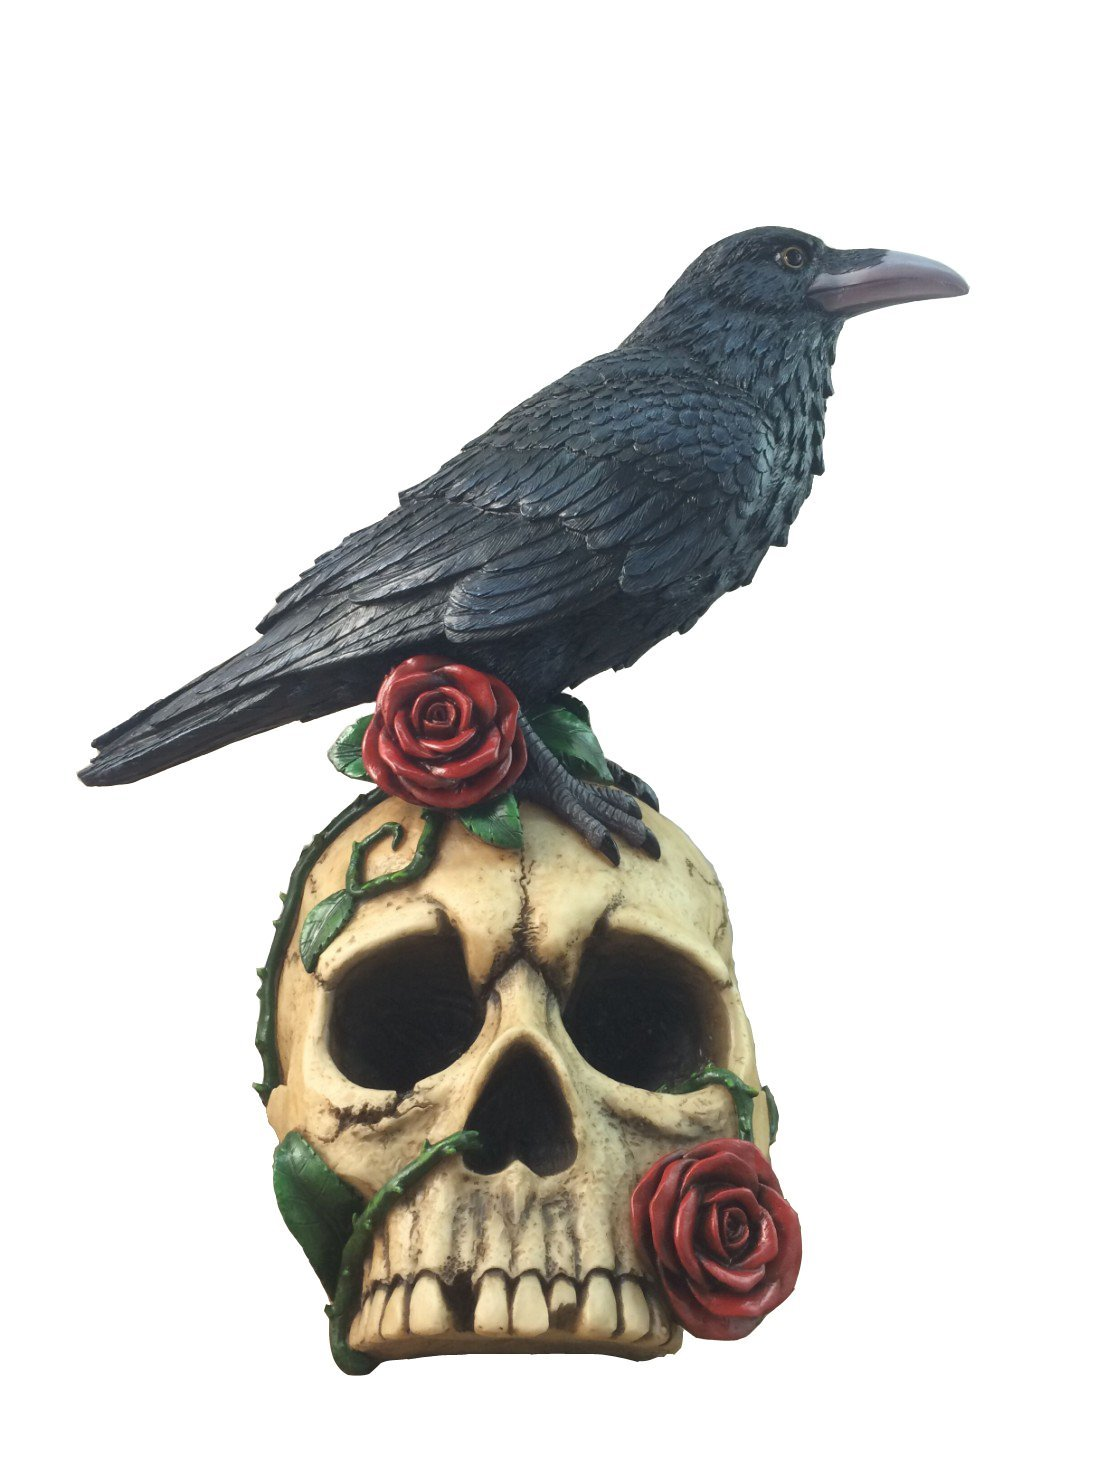 Decorative Gothic Raven On Skull Rose Collectible Figurine By DWK | Crow Bird Skeleton Statue And Sculpture